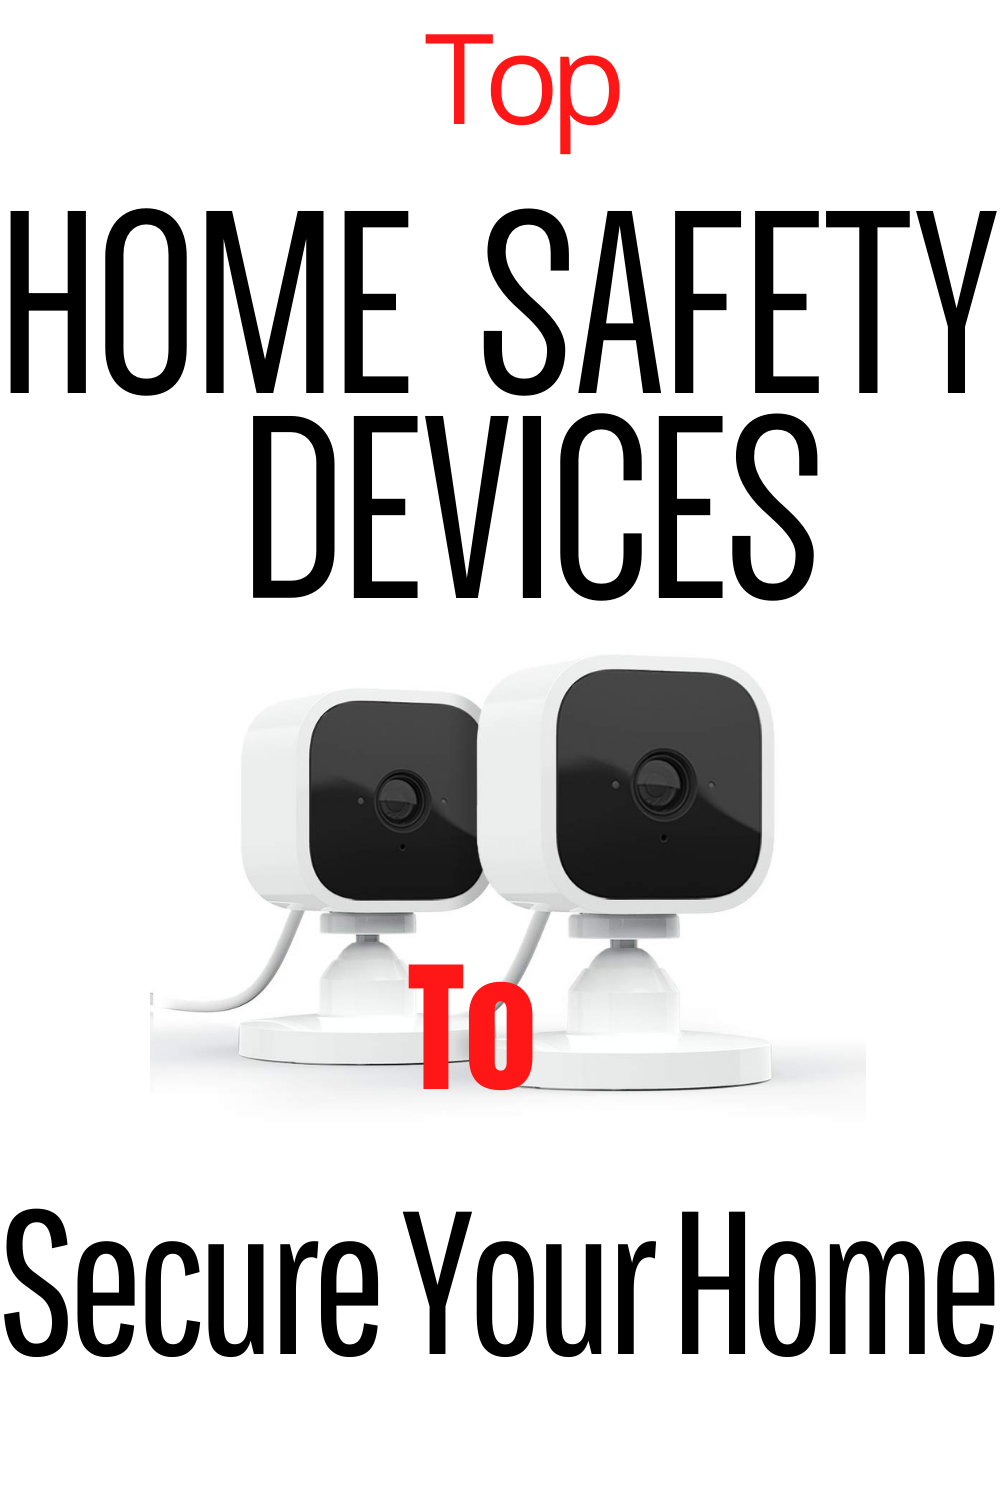 Home Safety Devices to keep you and your family safe, security cameras should not be limited so you can choose indoor or outdoor security cameras or even motion detecting safe cameras.